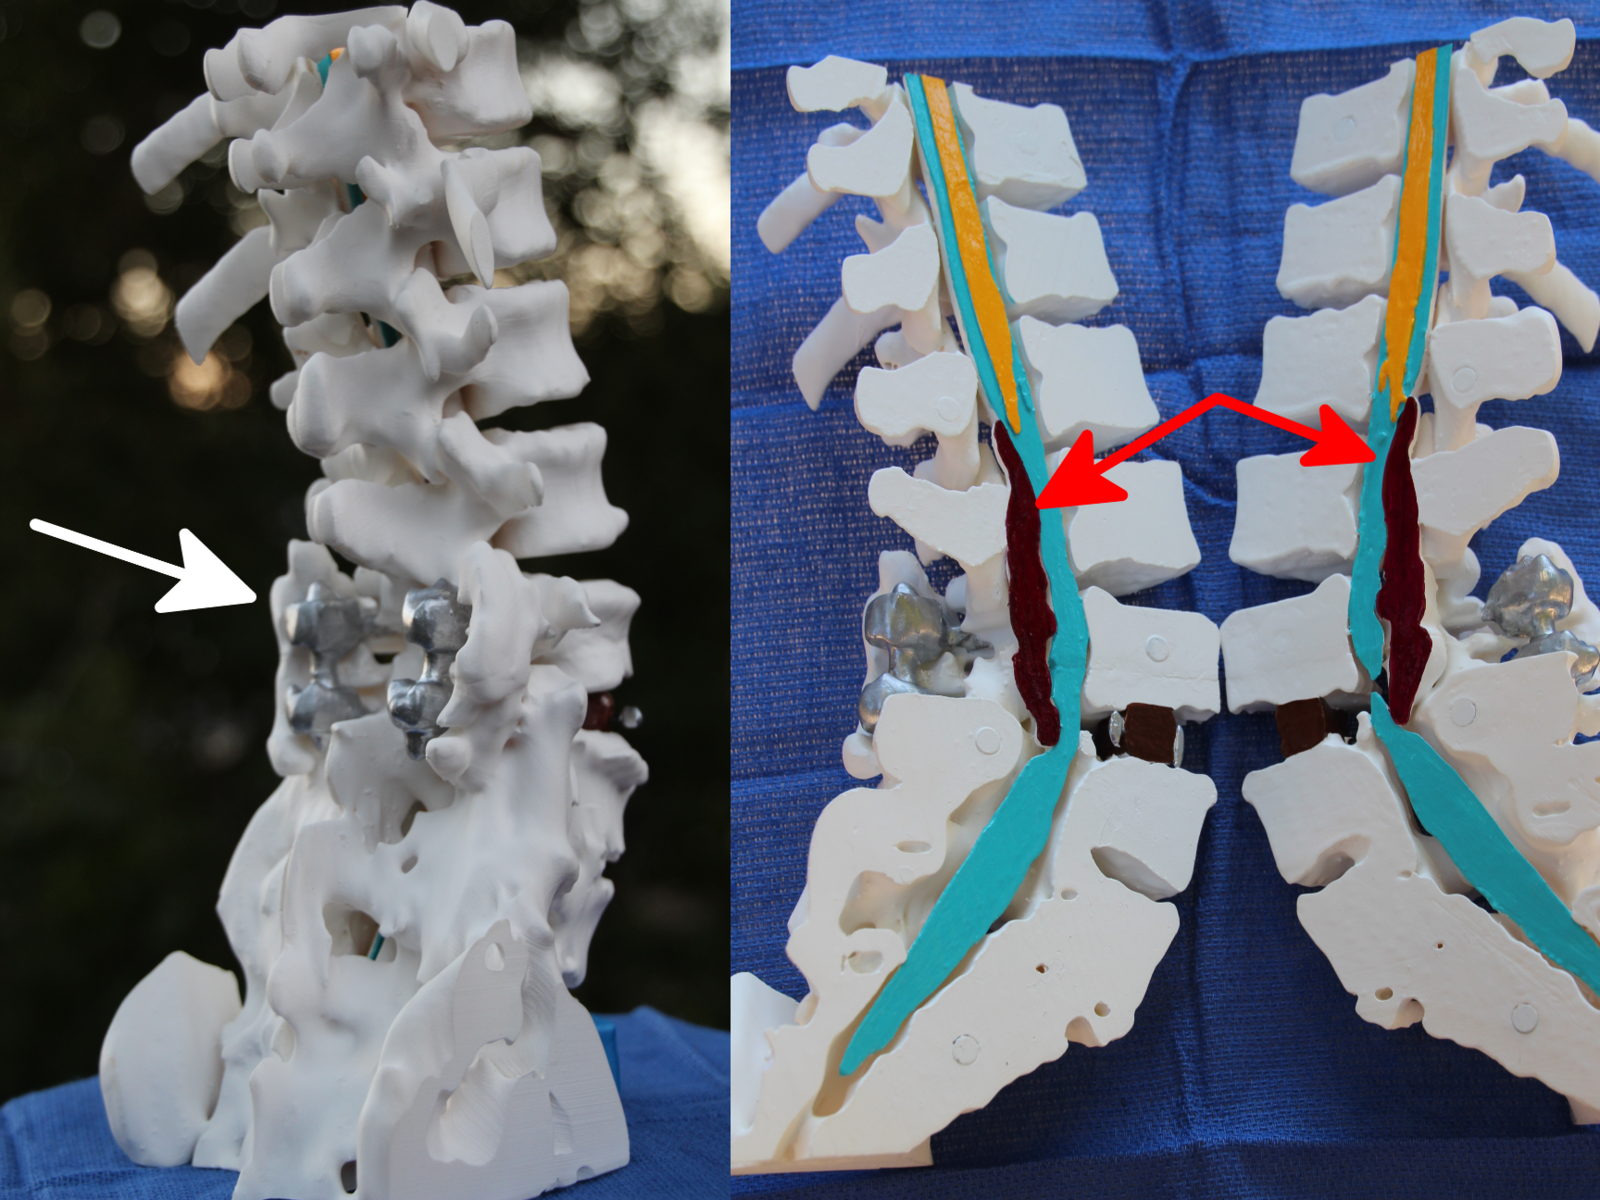 Spine model for trial exhibits